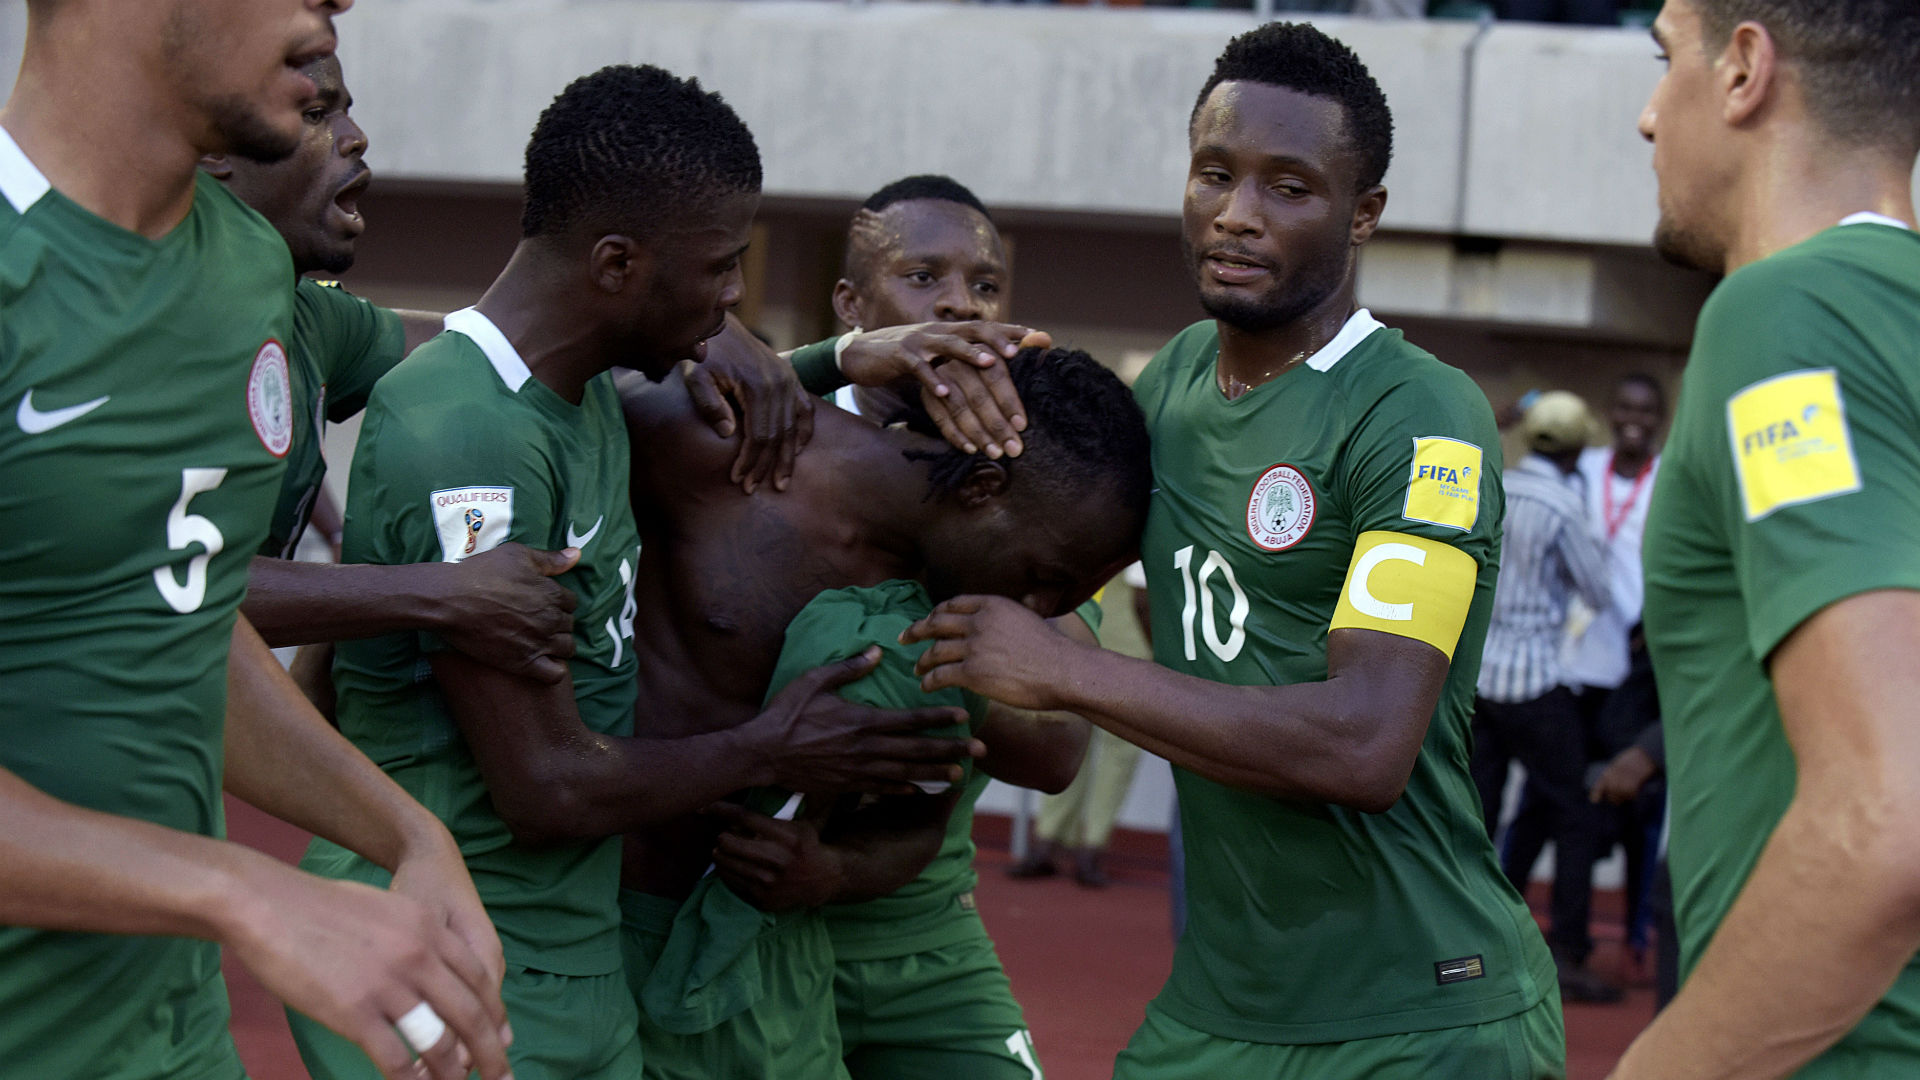 Nigeria focused for Cameroon tie - Rohr